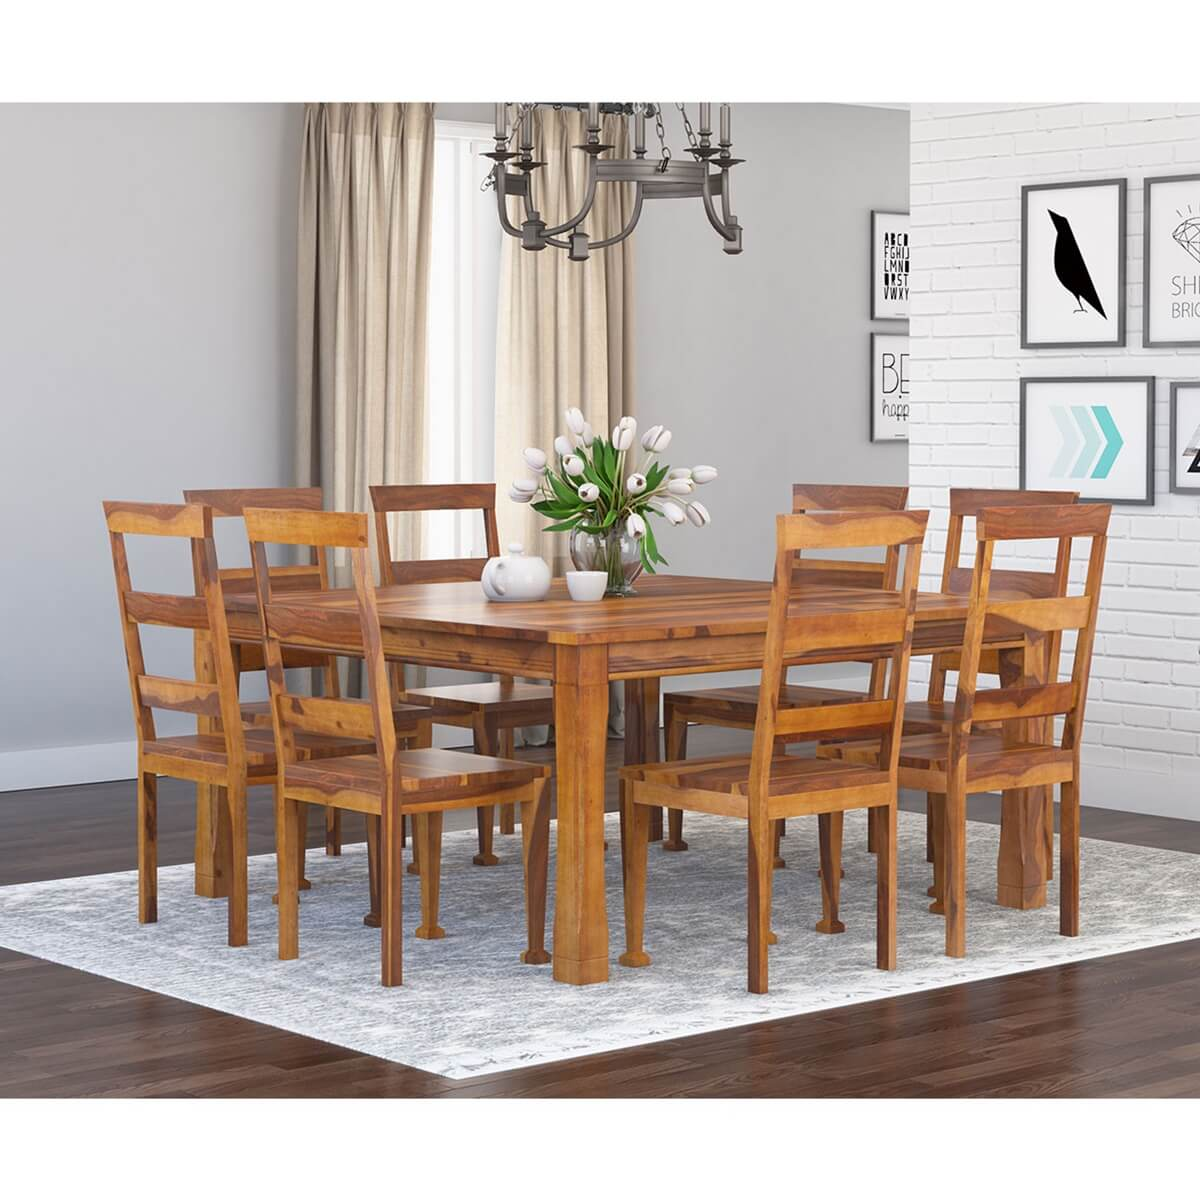 Dining Room Dining Tables Dallas Ranch Transitional 64 Square Wood